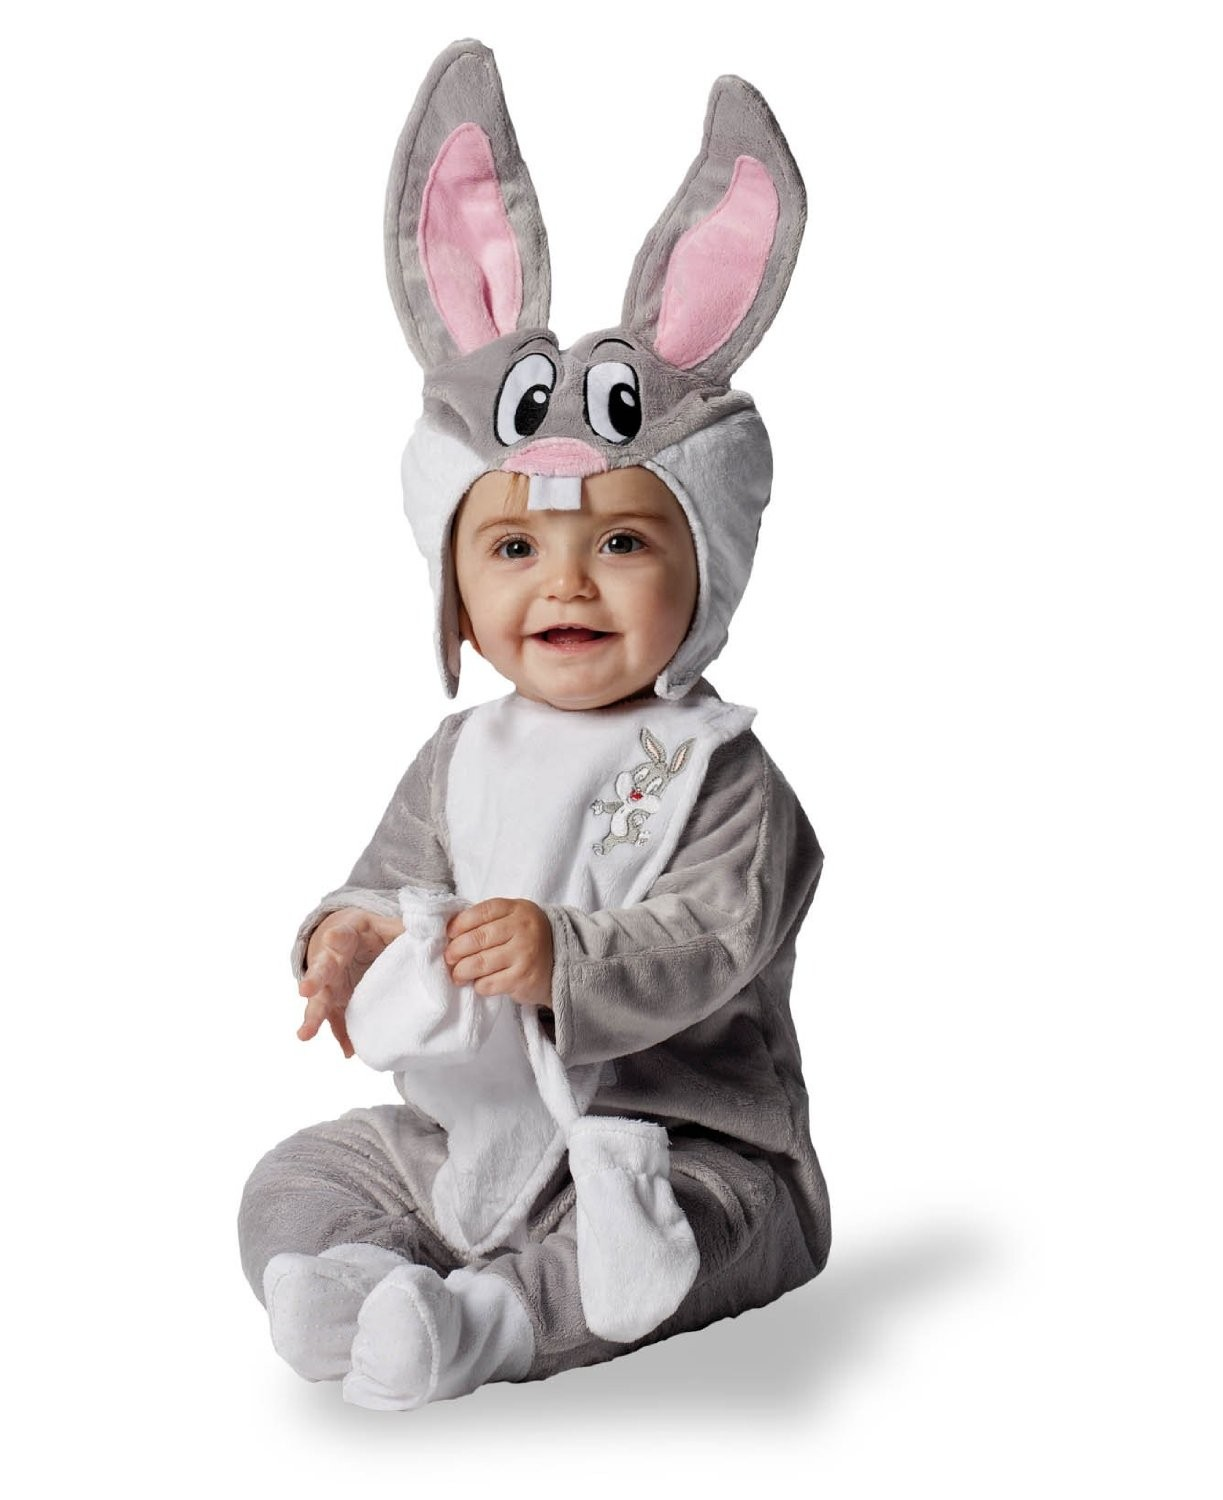 Official Deluxe Looney Tunes Bugs Bunny Rabbit Fancy Dress 18/36 Month